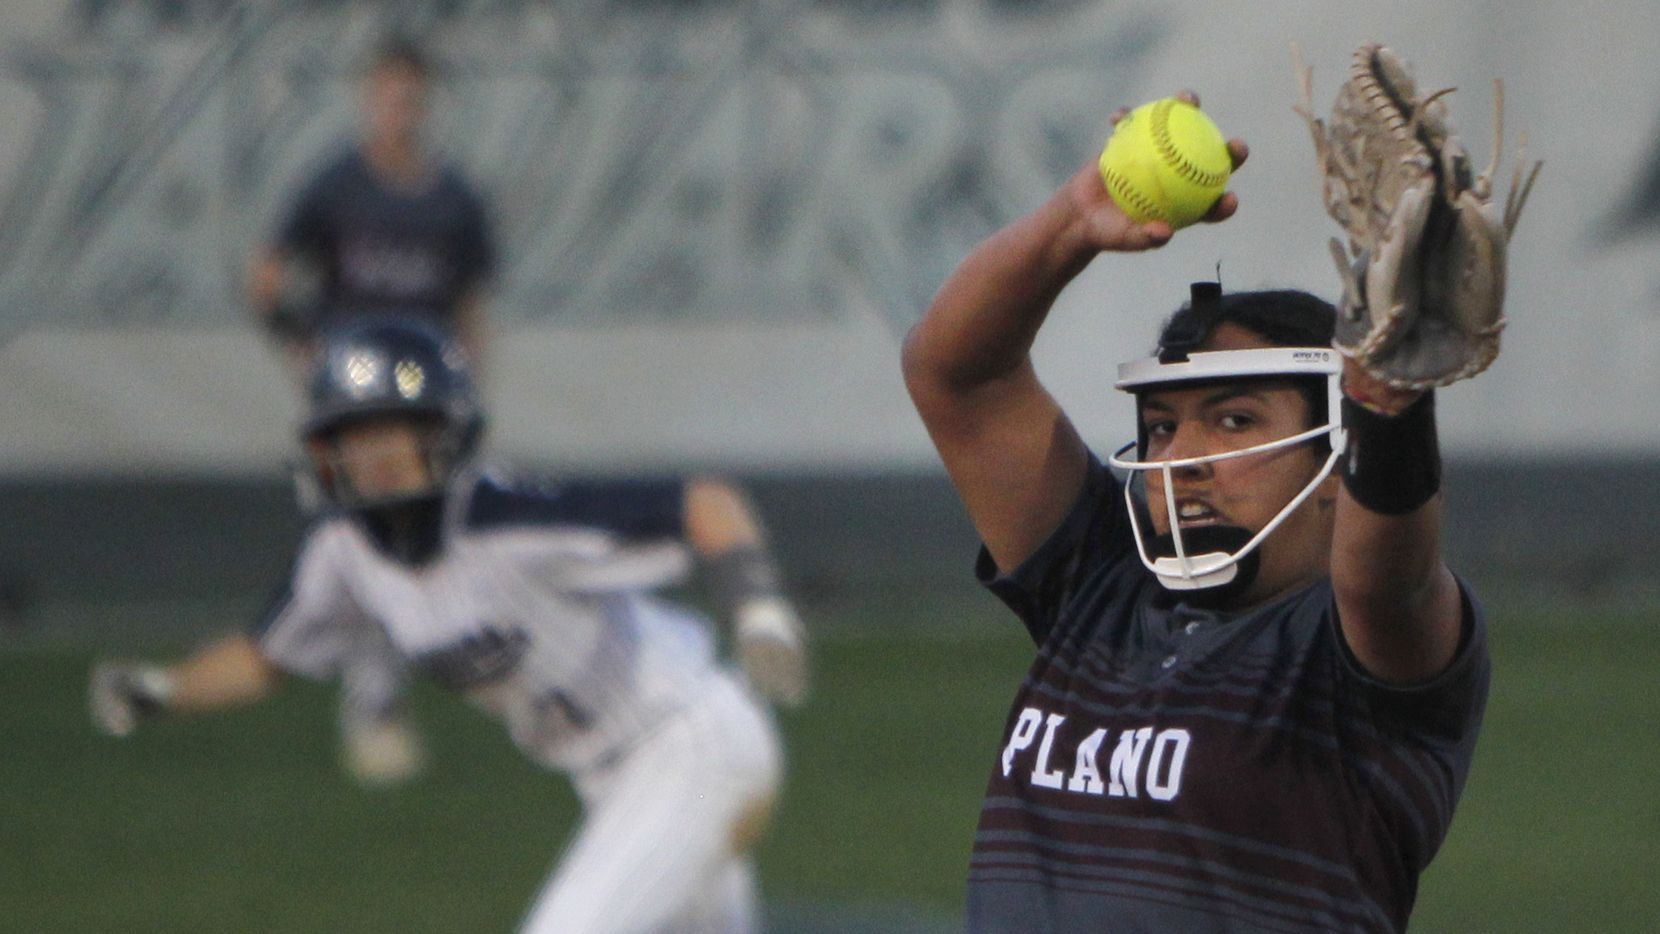 Plano pitcher Jayden Bluitt delivers a pitch to a Flower Mound batter during the bottom of the second. The two teams played their District 6-6A softball game at Flower Mound High School in Flower Mound on March 23, 2021.